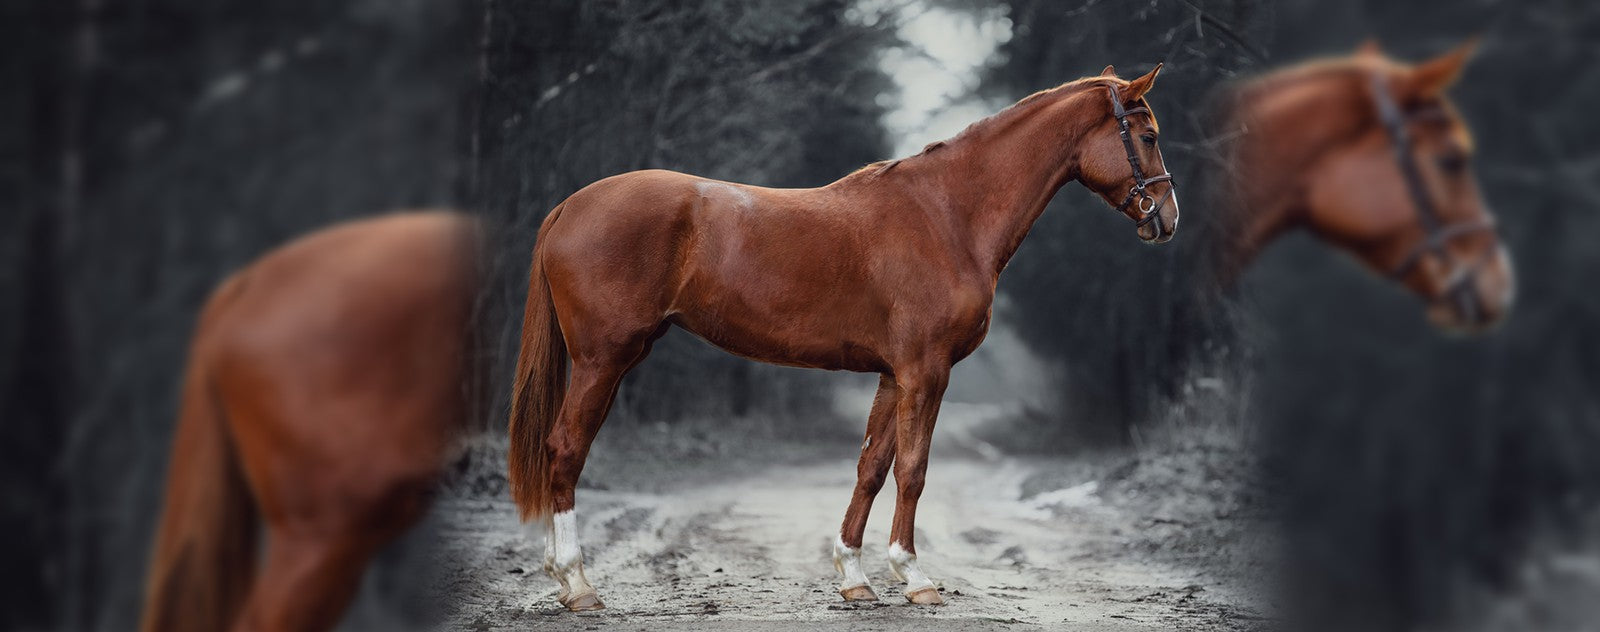 metiers-cheval